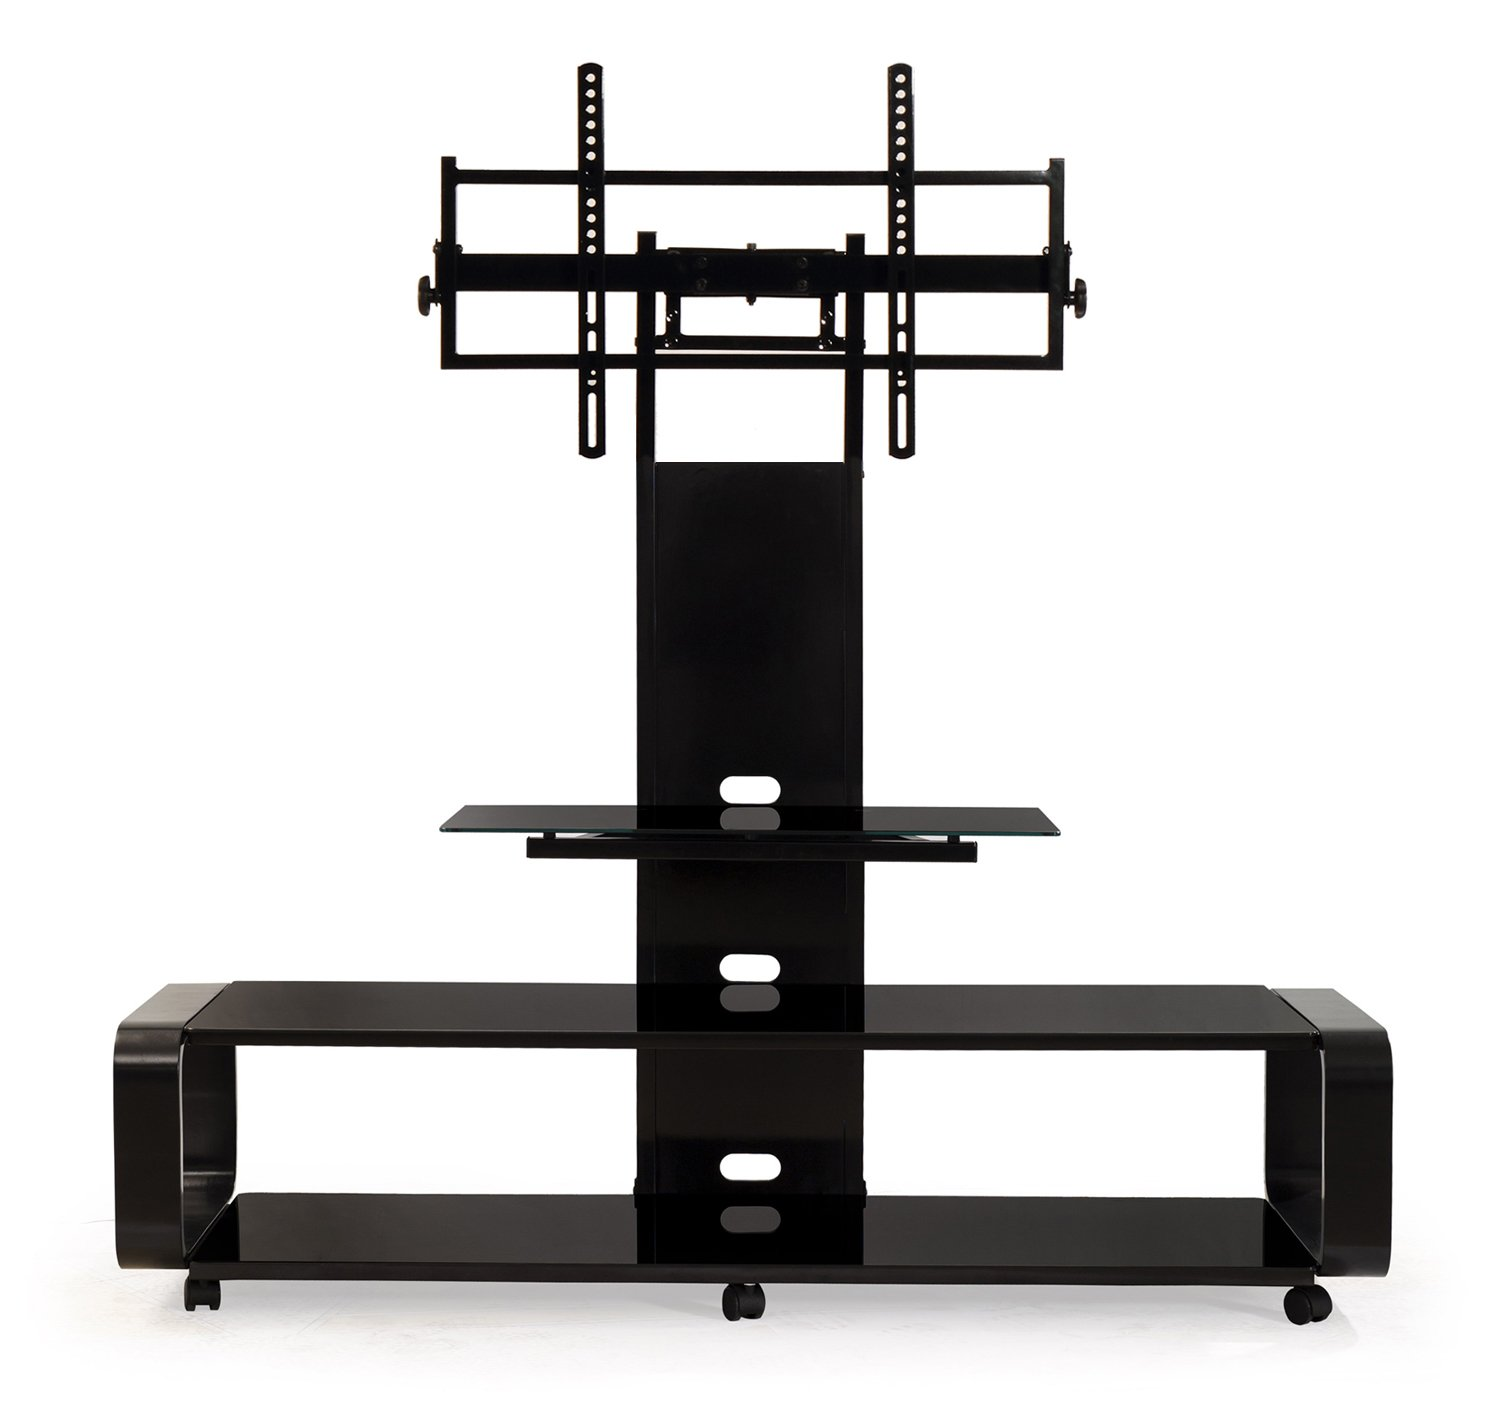 TransDeco Curved Wood TV Stand with mount for 35 to 85 inch TV TD685B Black